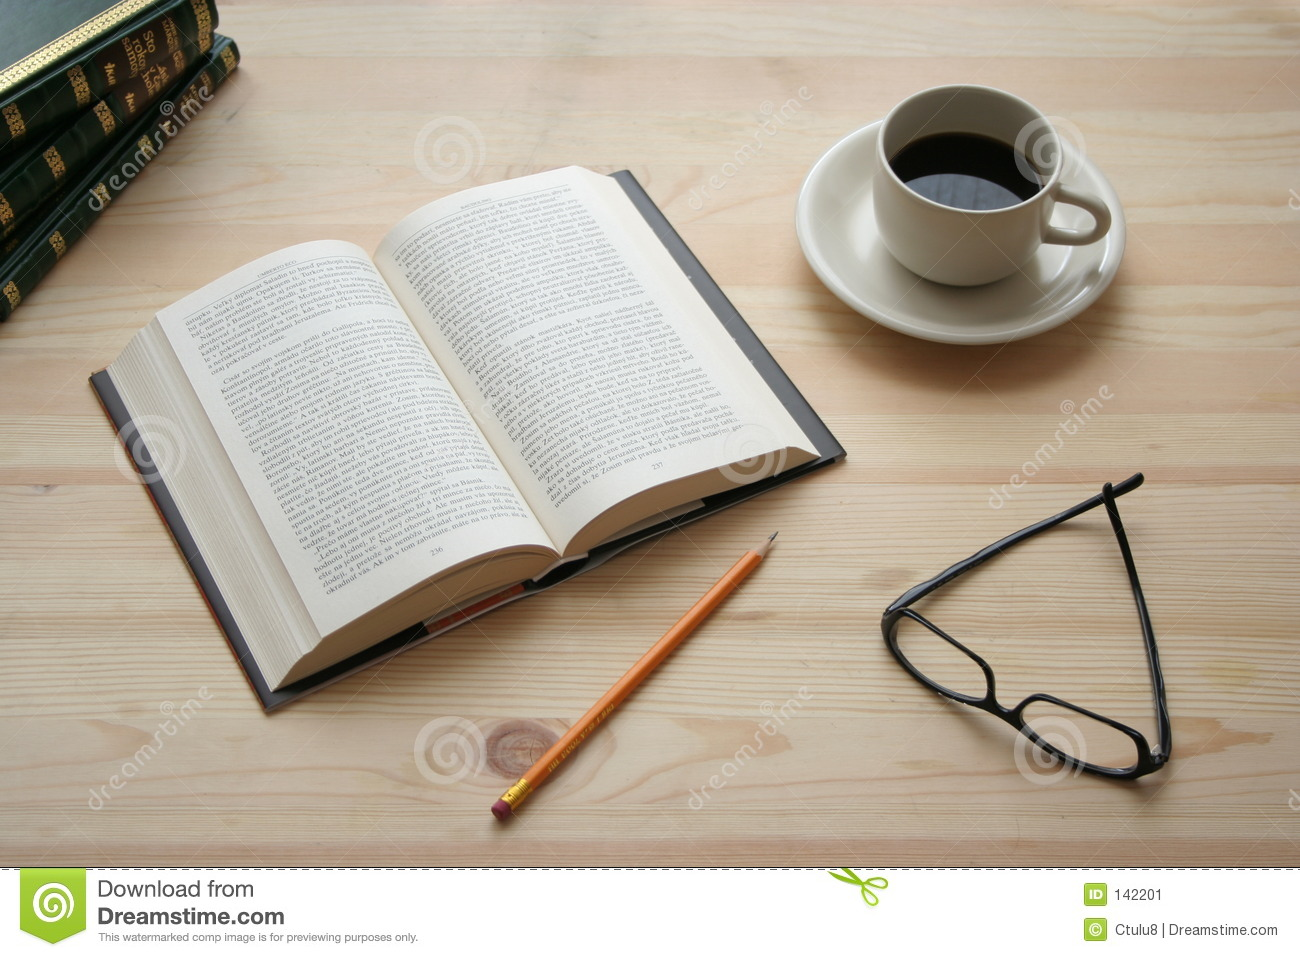 Coffee And Book Stock Image - Image: 142201